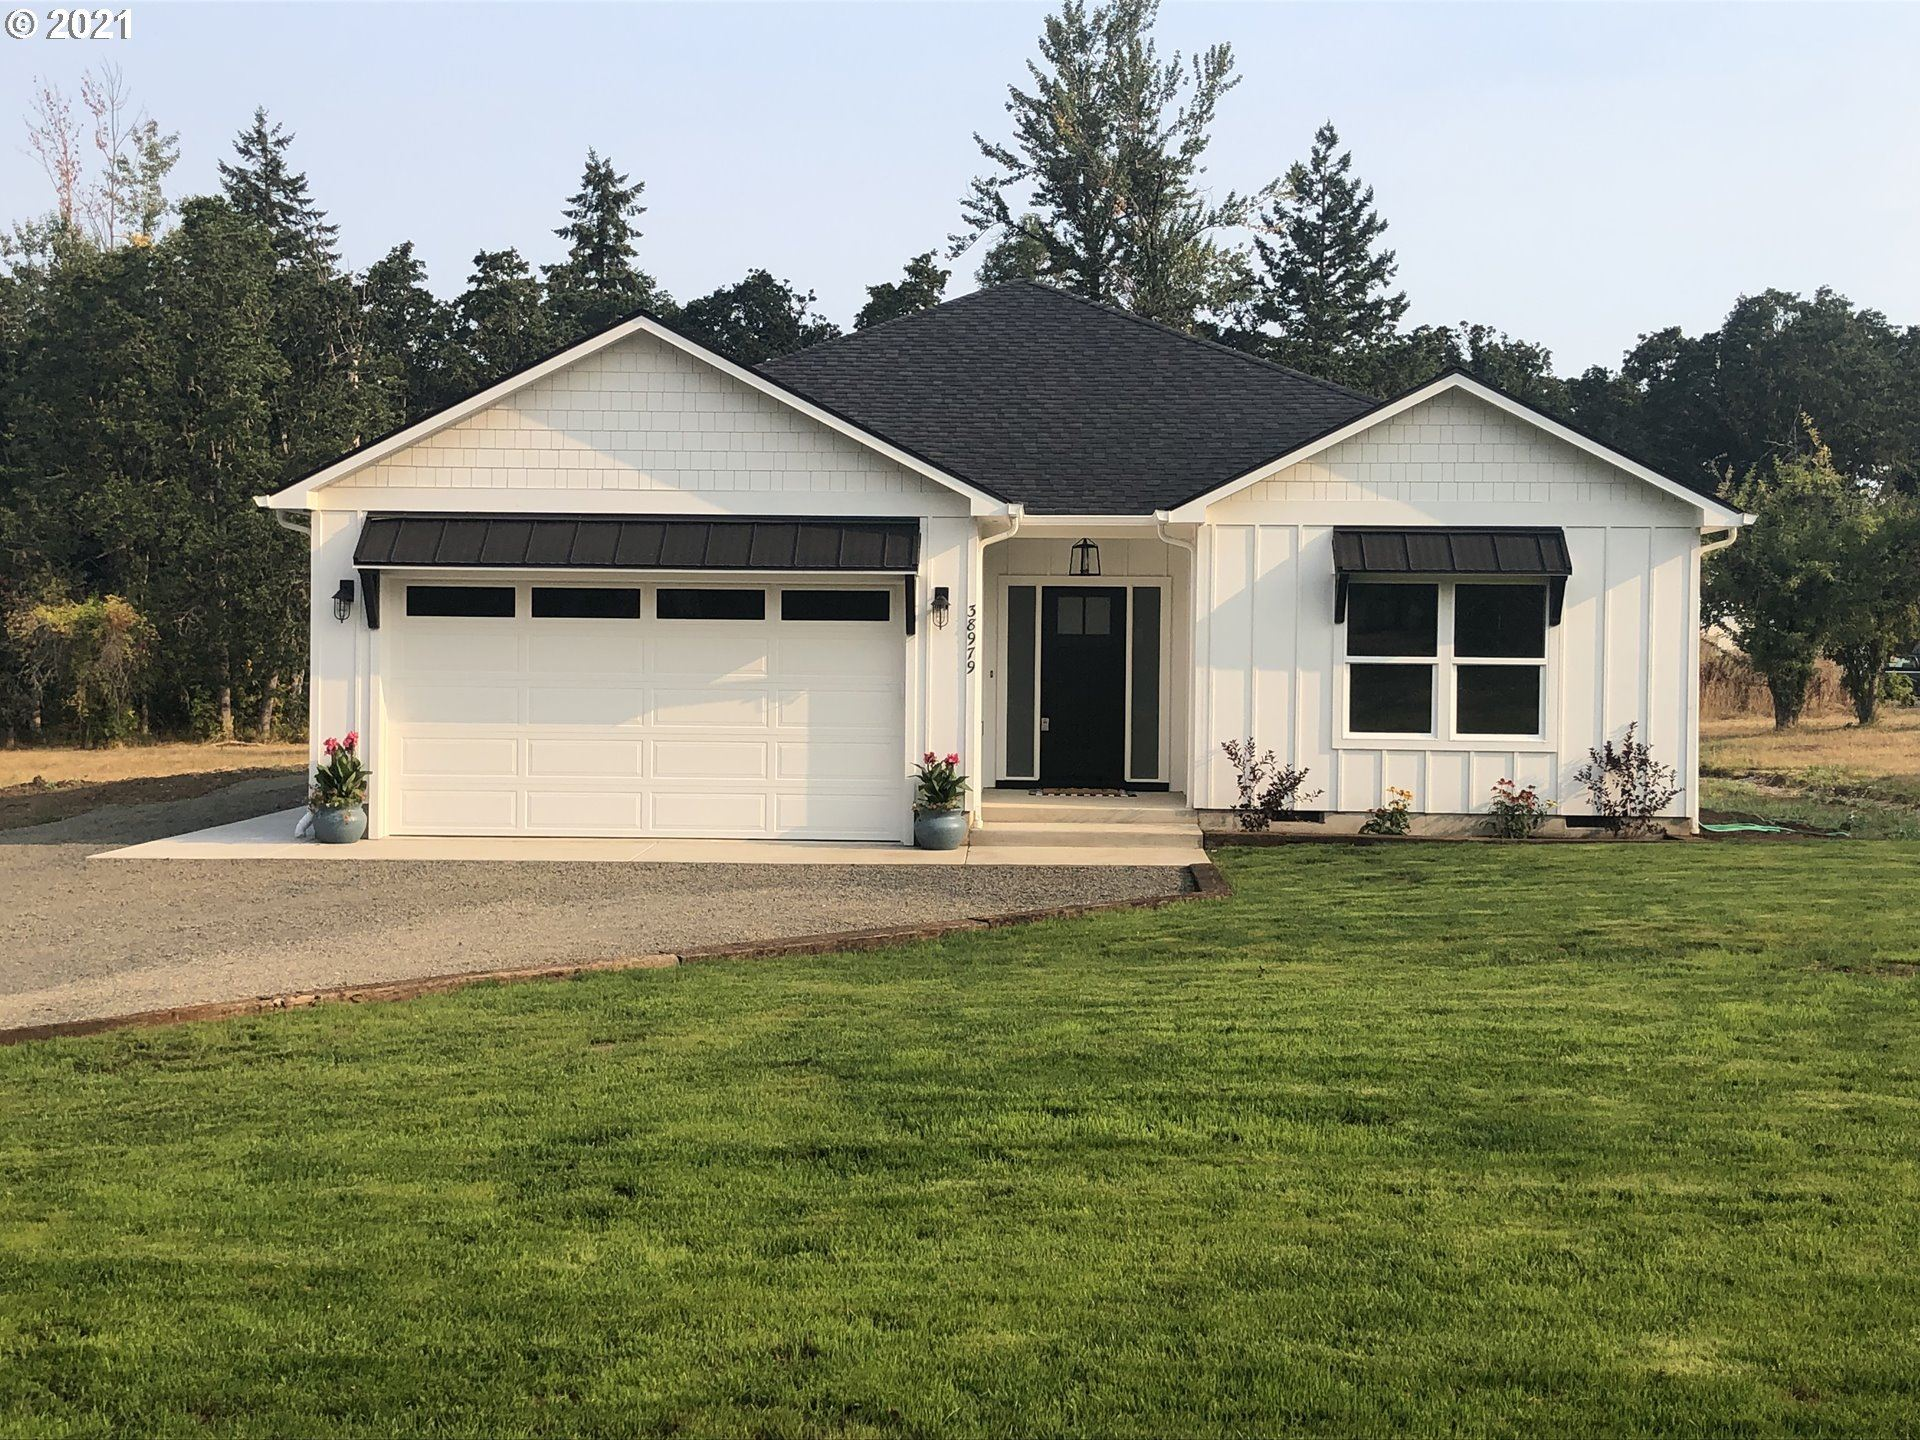 Photo for 38979 Rogers LN, Dexter, OR 97431 (MLS # 21332471)